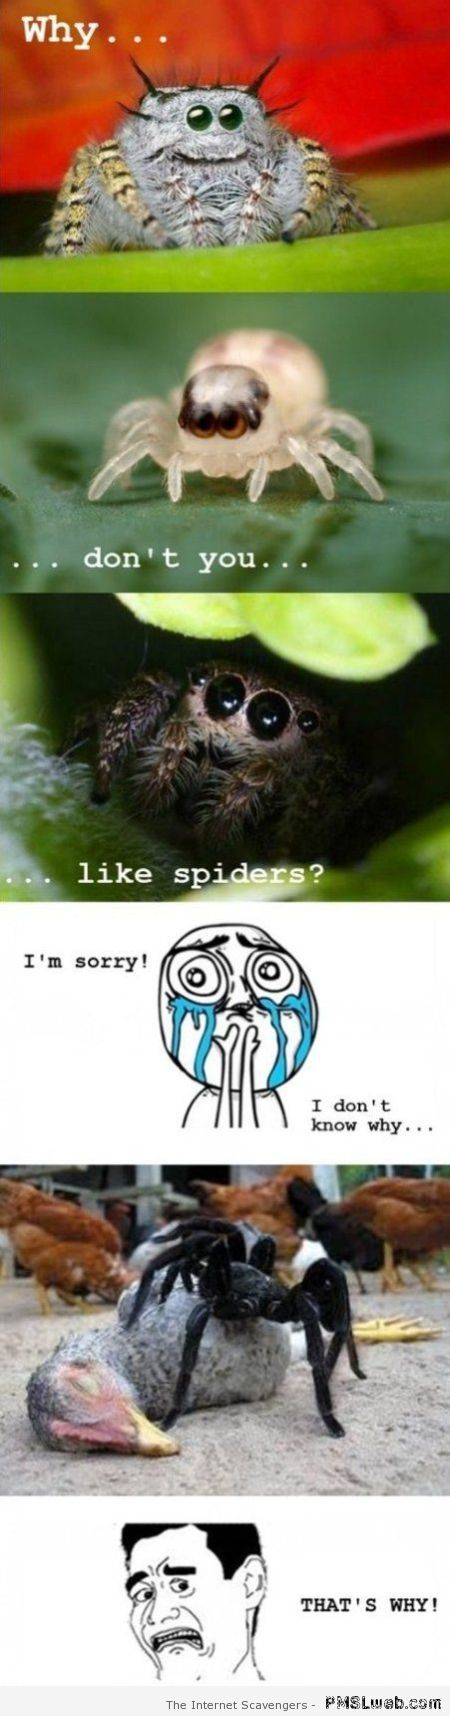 Why don't you like spiders meme at PMSLweb.com